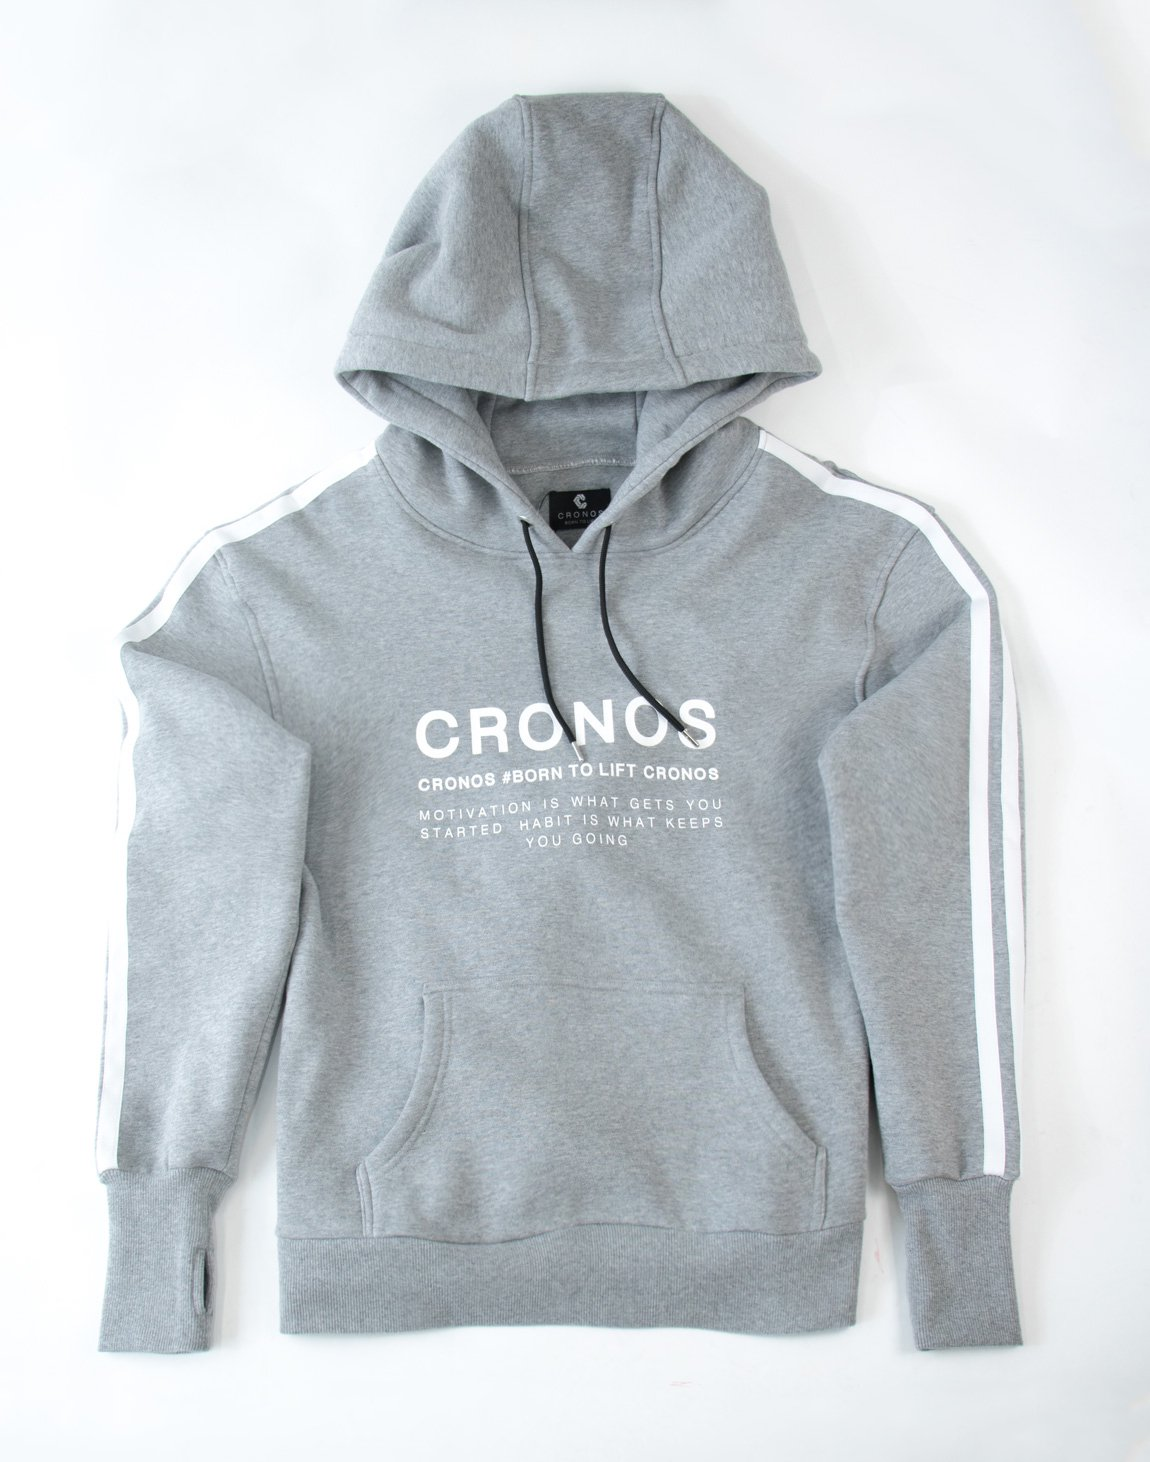 <img class='new_mark_img1' src='https://img.shop-pro.jp/img/new/icons1.gif' style='border:none;display:inline;margin:0px;padding:0px;width:auto;' />CRONOS Sentence Pull Over Parka GRAY